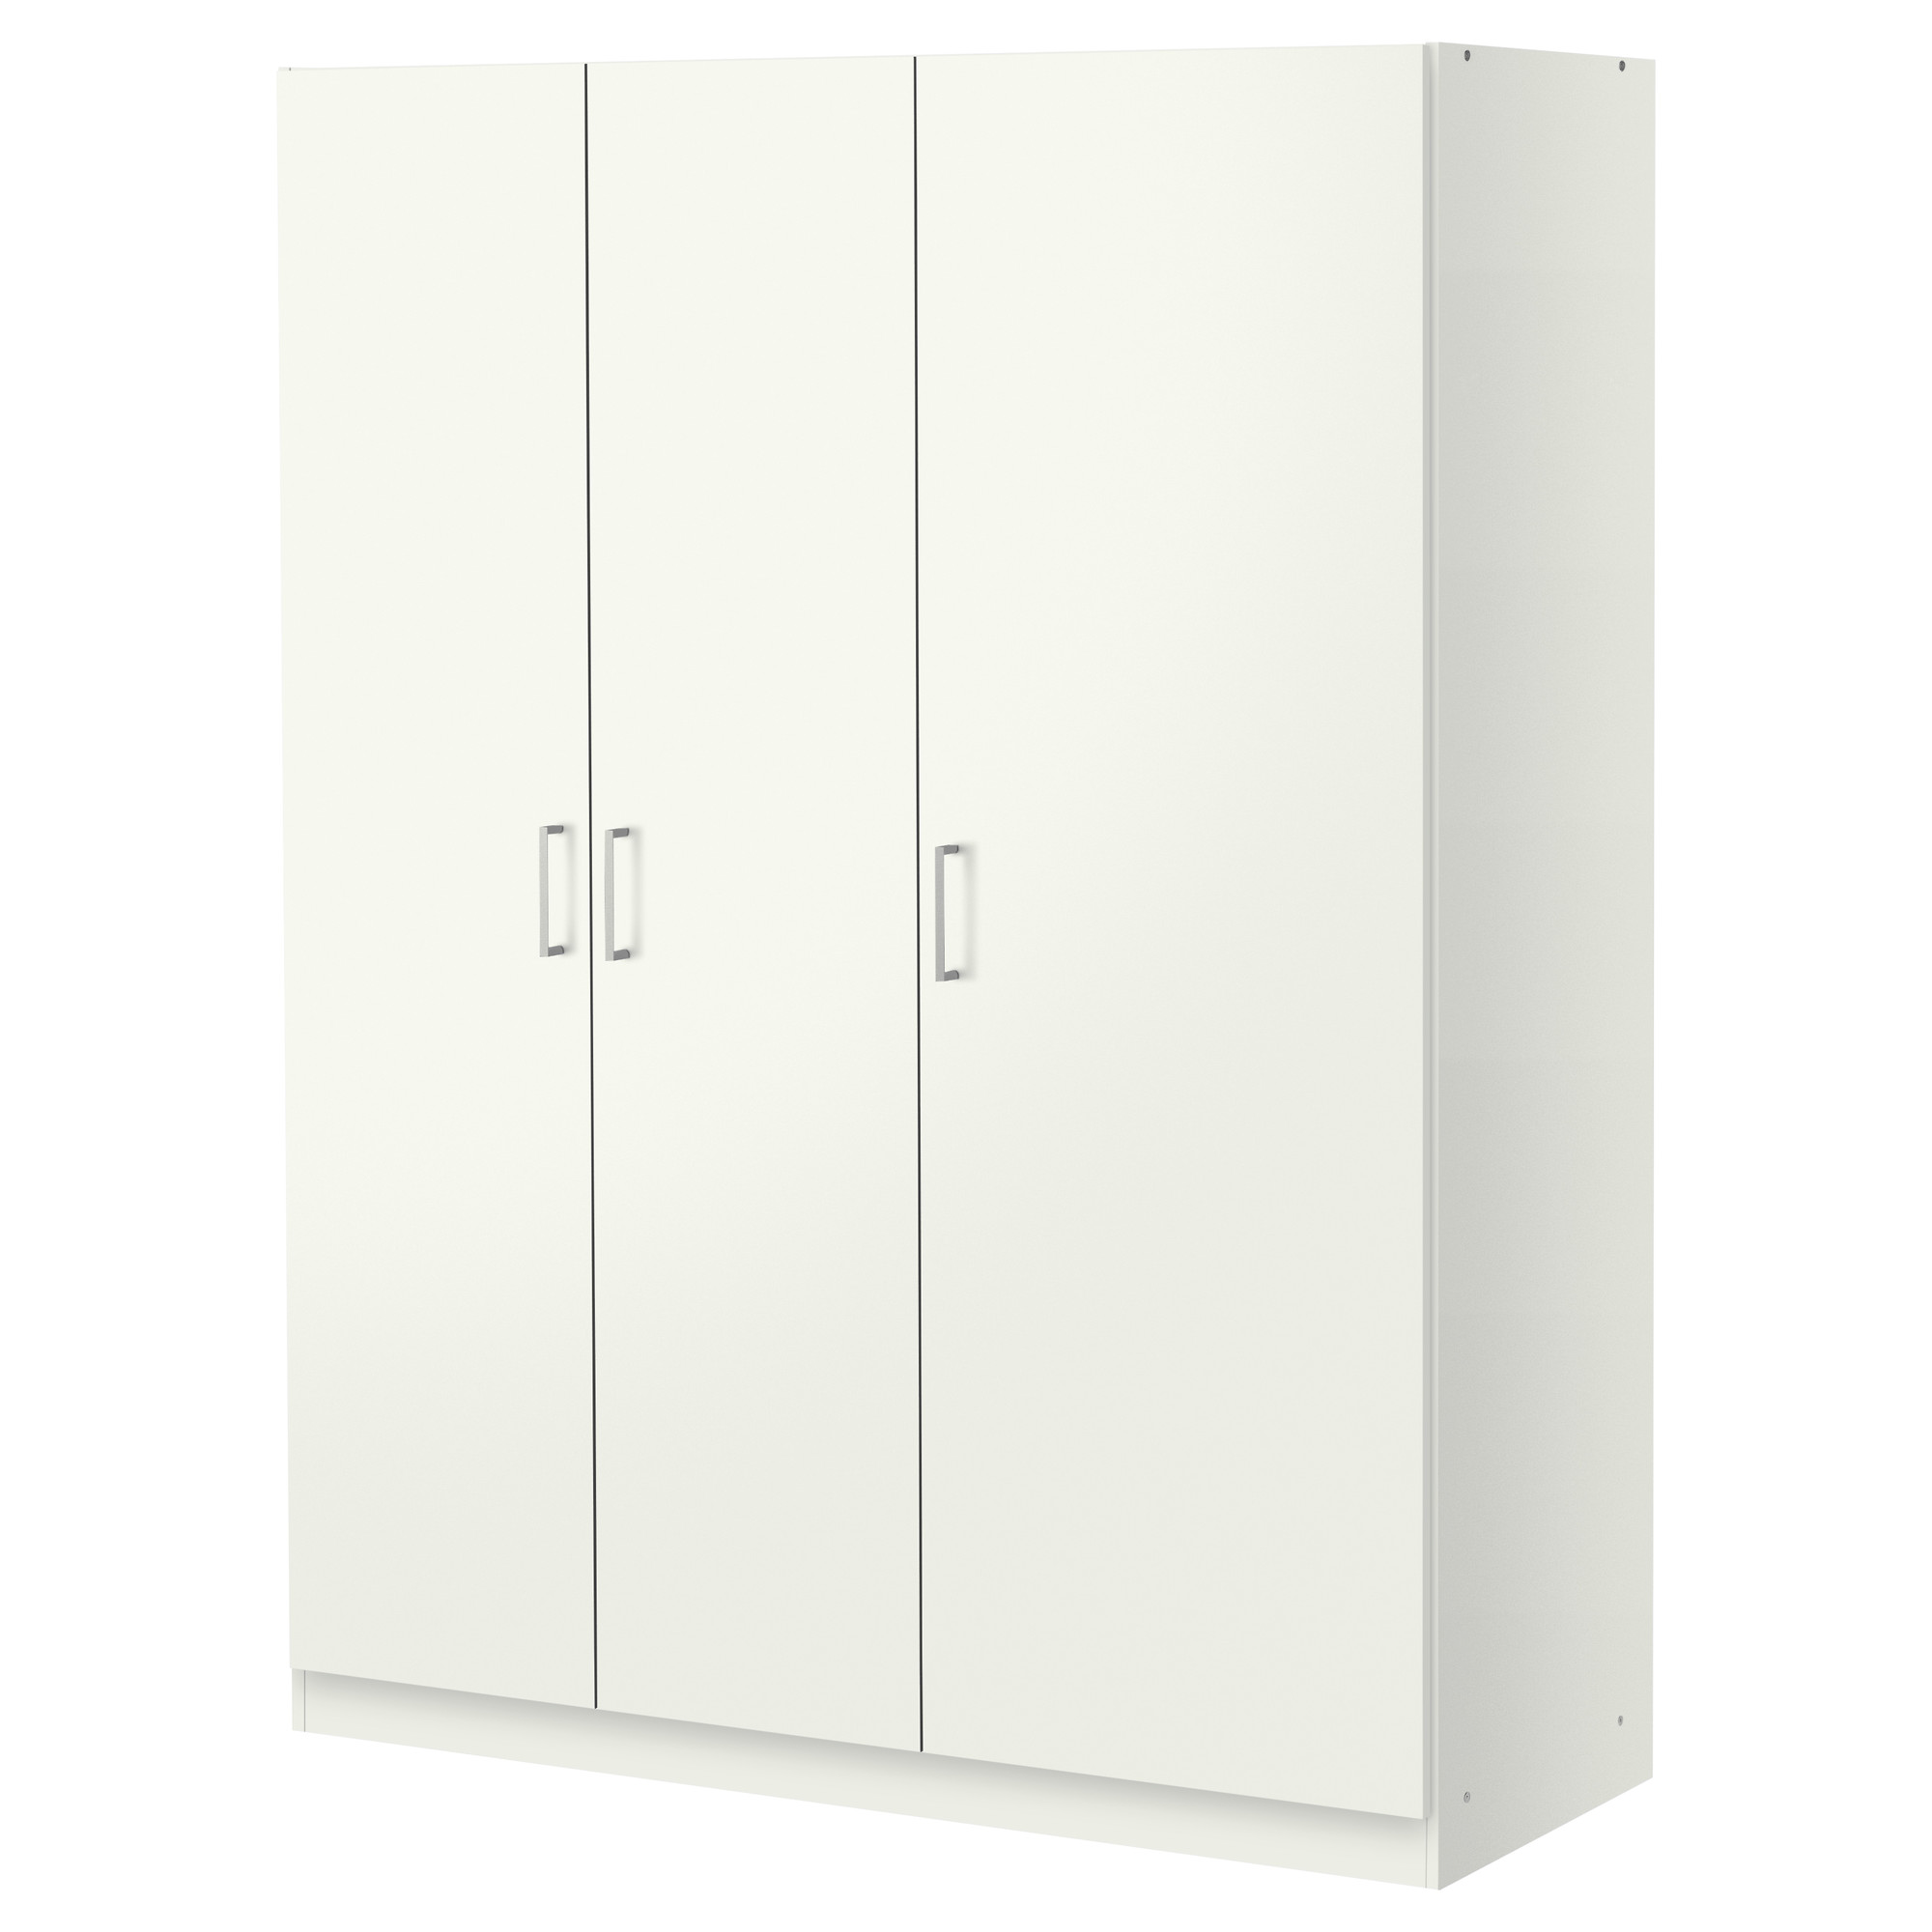 Ikea Wardrobe with Mirror | Ikea Wardrobes Sliding Mirror Doors | Ikea Wardrobe